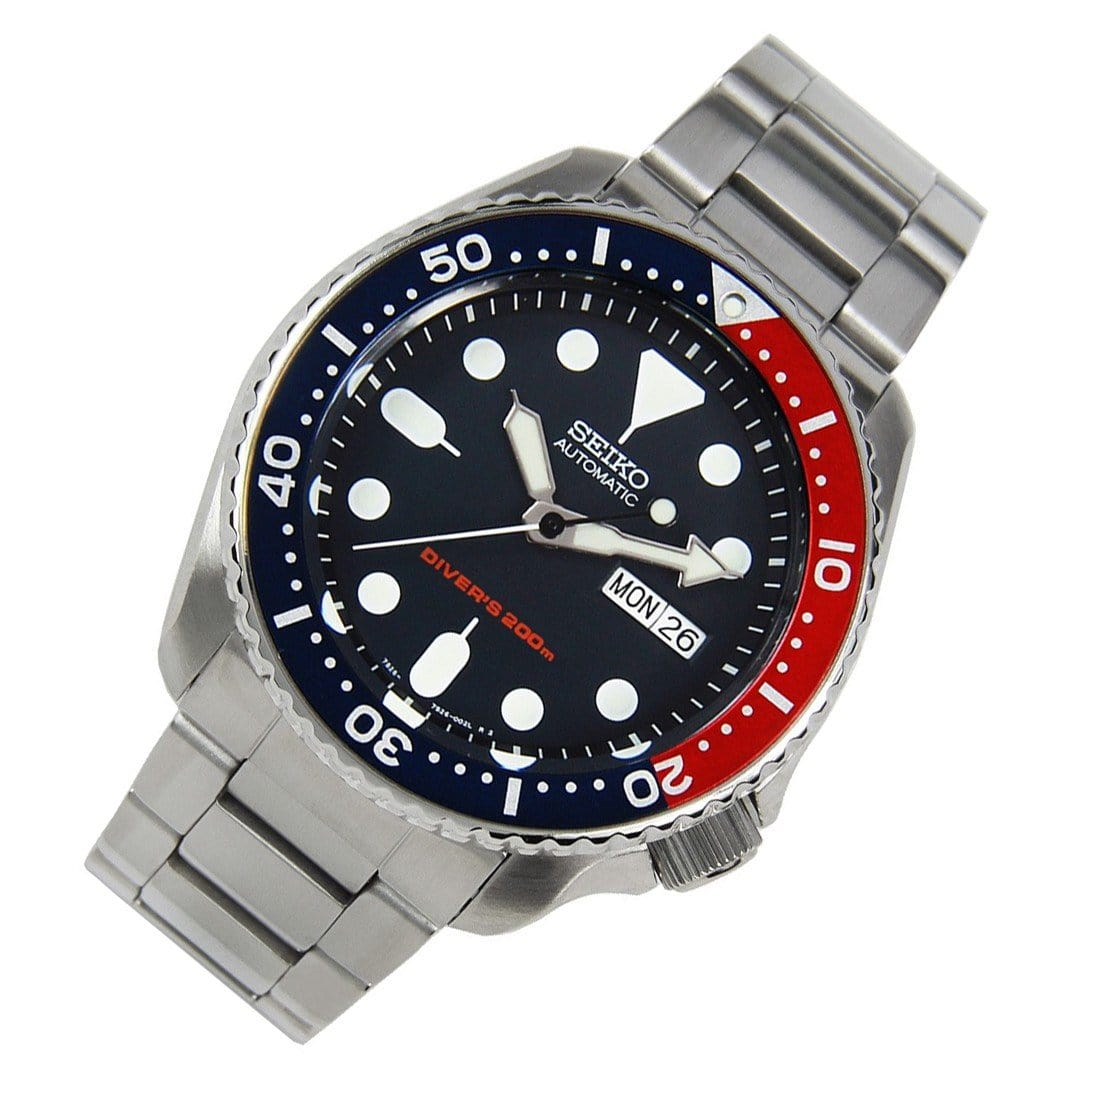 Seiko Automatic Oyster Stainless Steel Diving Watch SKX009 SKX009K2